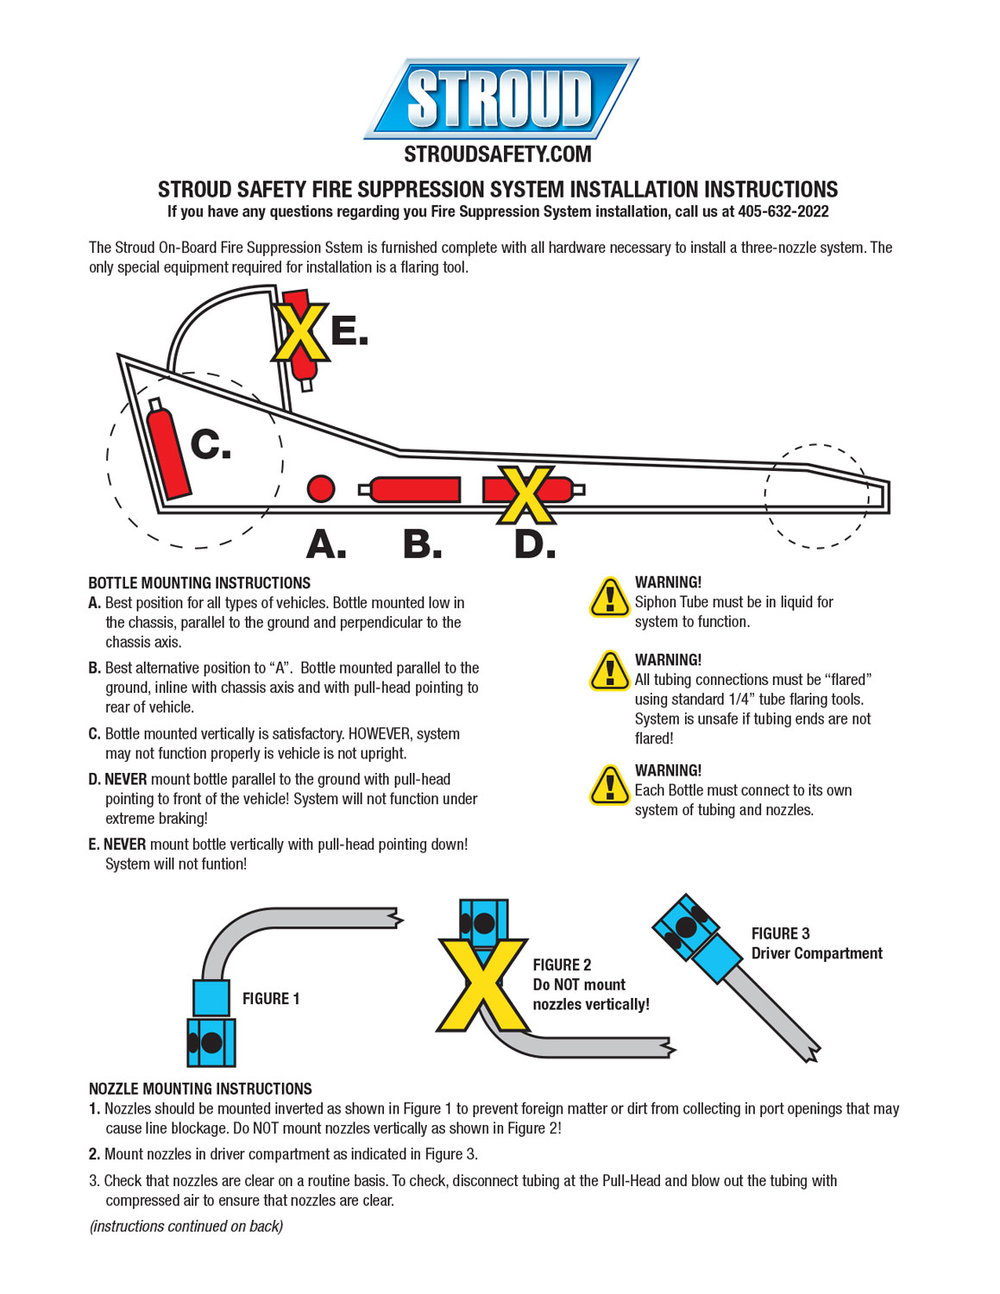 Download the Stroud Safety Fire Suppression System Installation Instruction sheet (PDF)